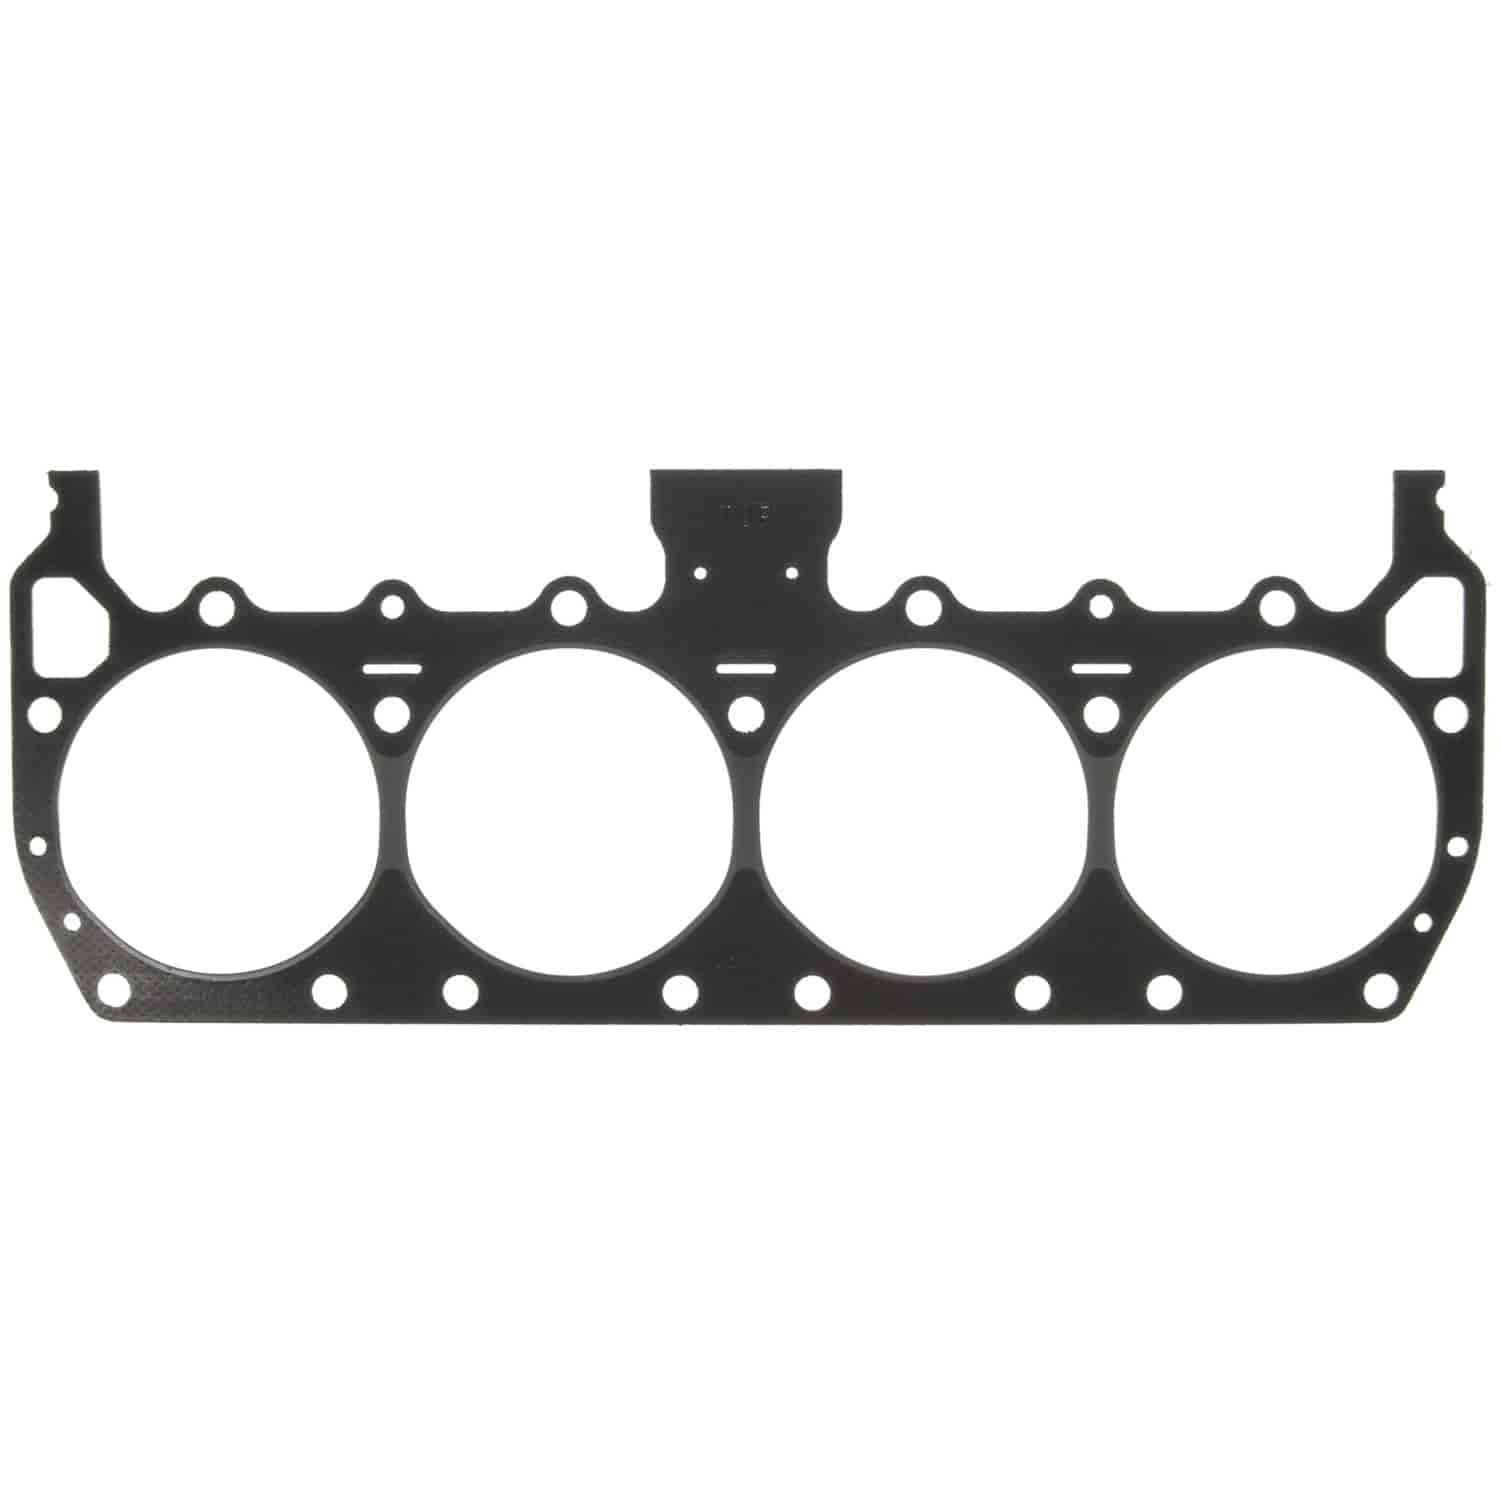 Clevite MAHLE 3464SG: Performance Head Gasket 1958-1979